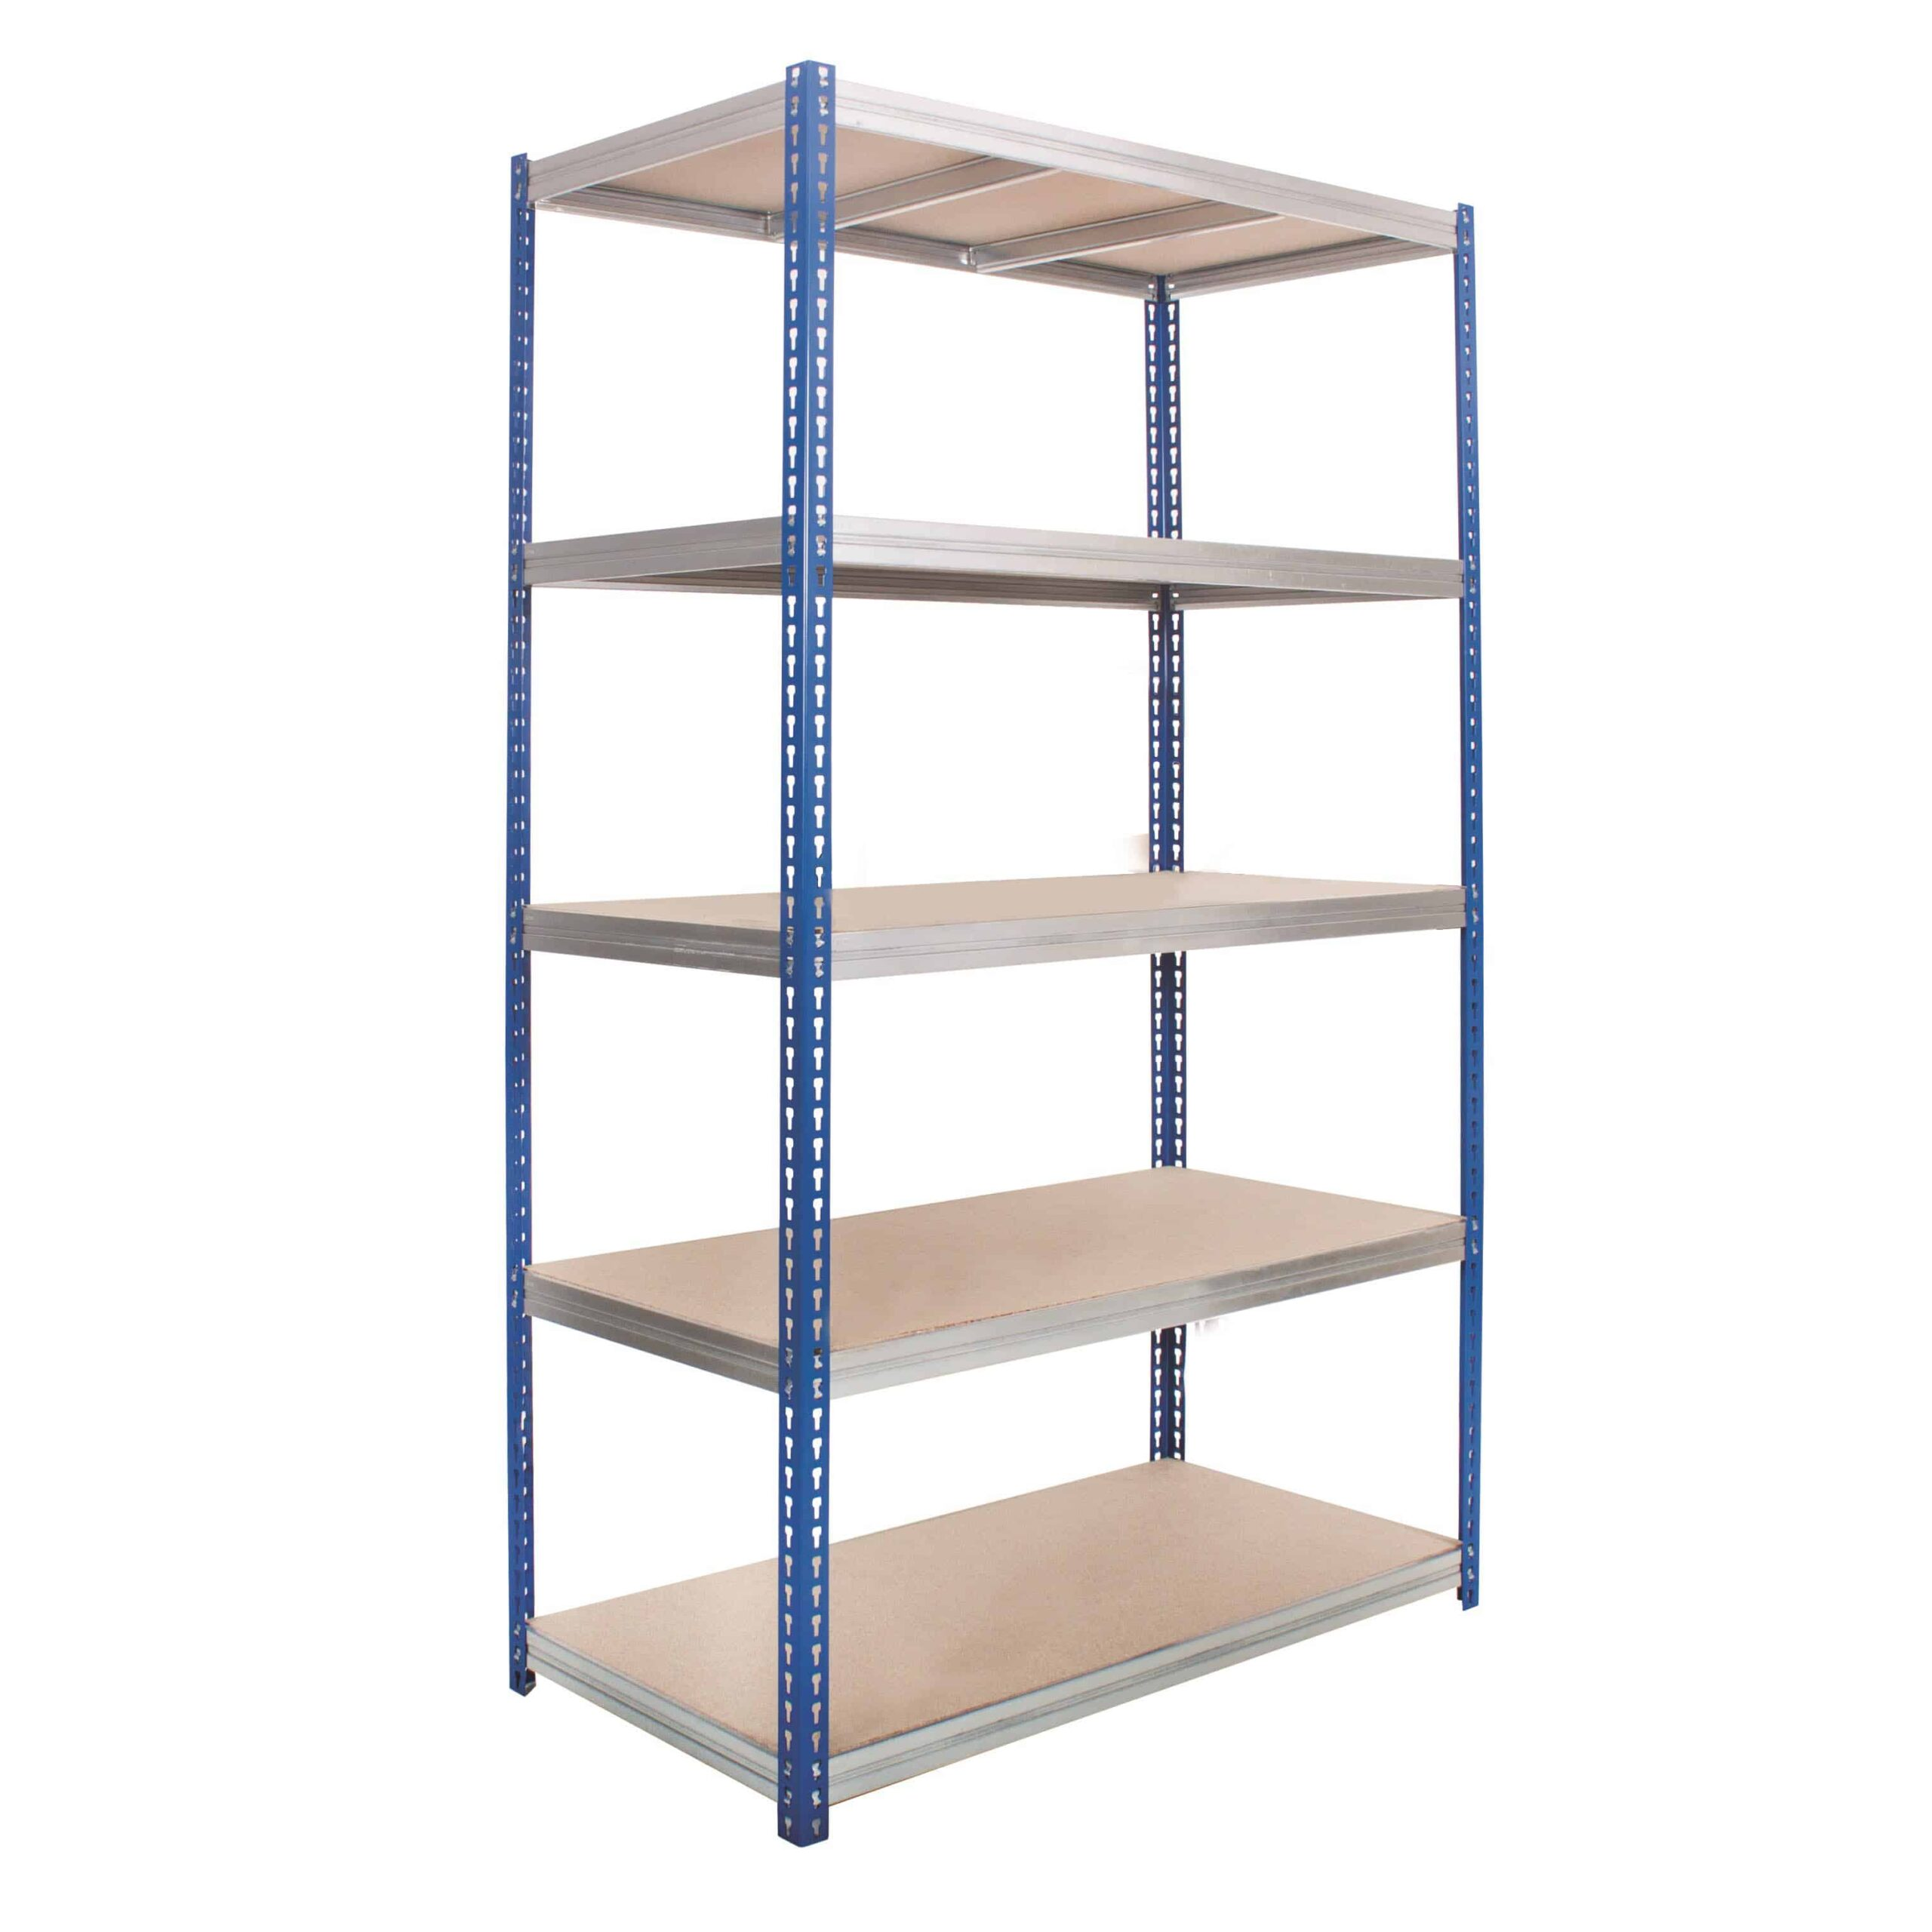 Kwikrack Medium Duty Shelving Bays